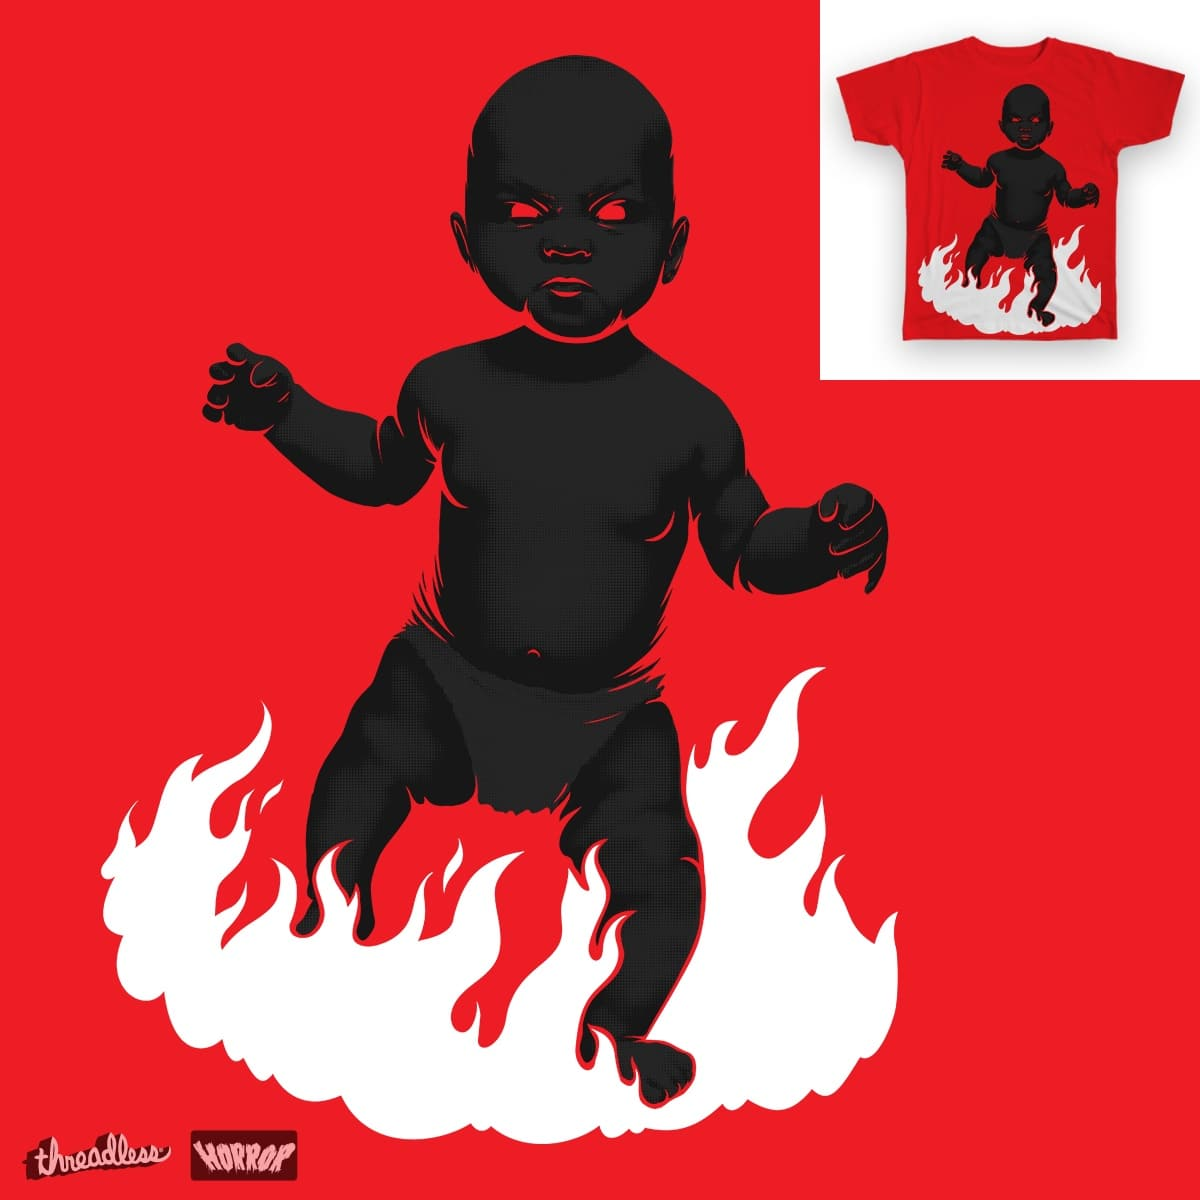 Evil Baby by kentloset on Threadless